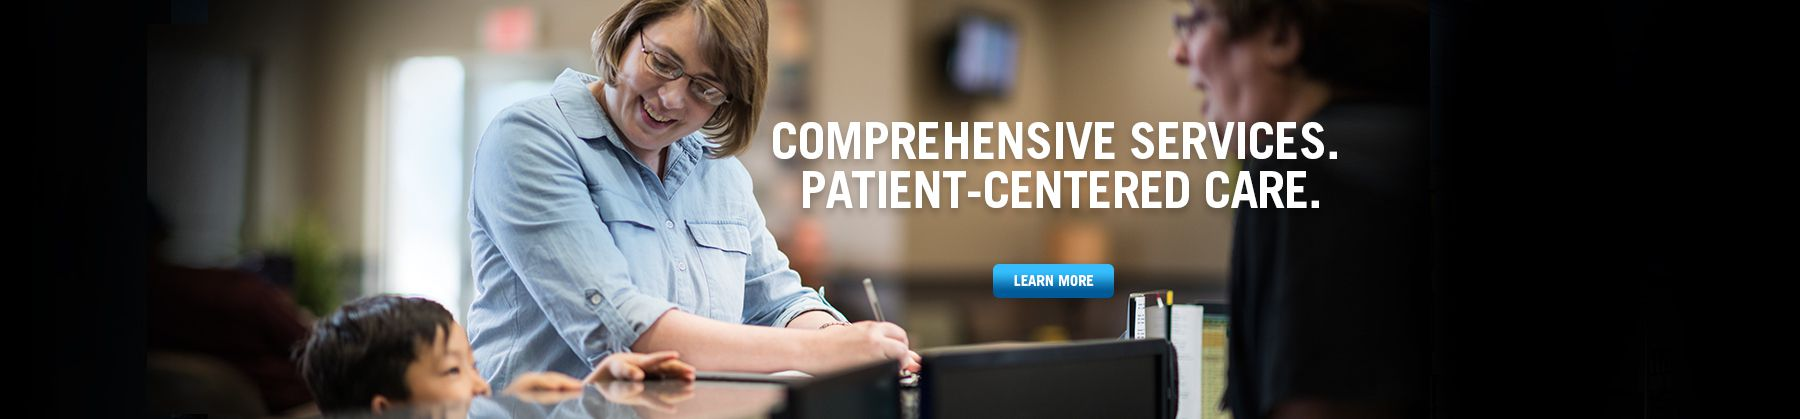 Comprehensive Services. Patient-Centered Care.